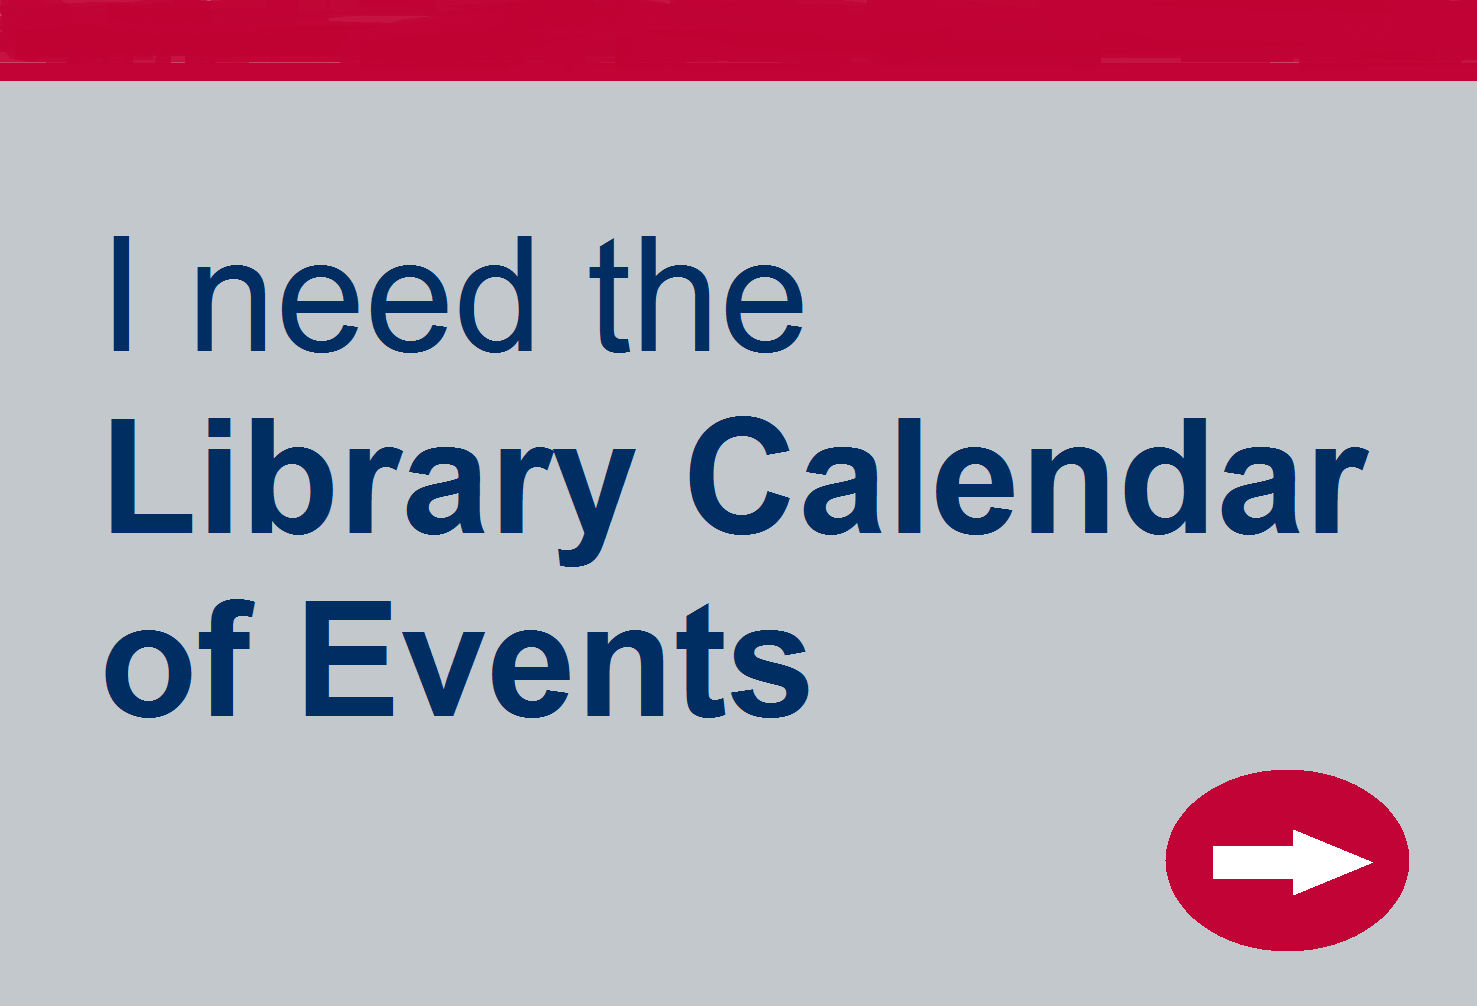 Need the Library Calendar of Events